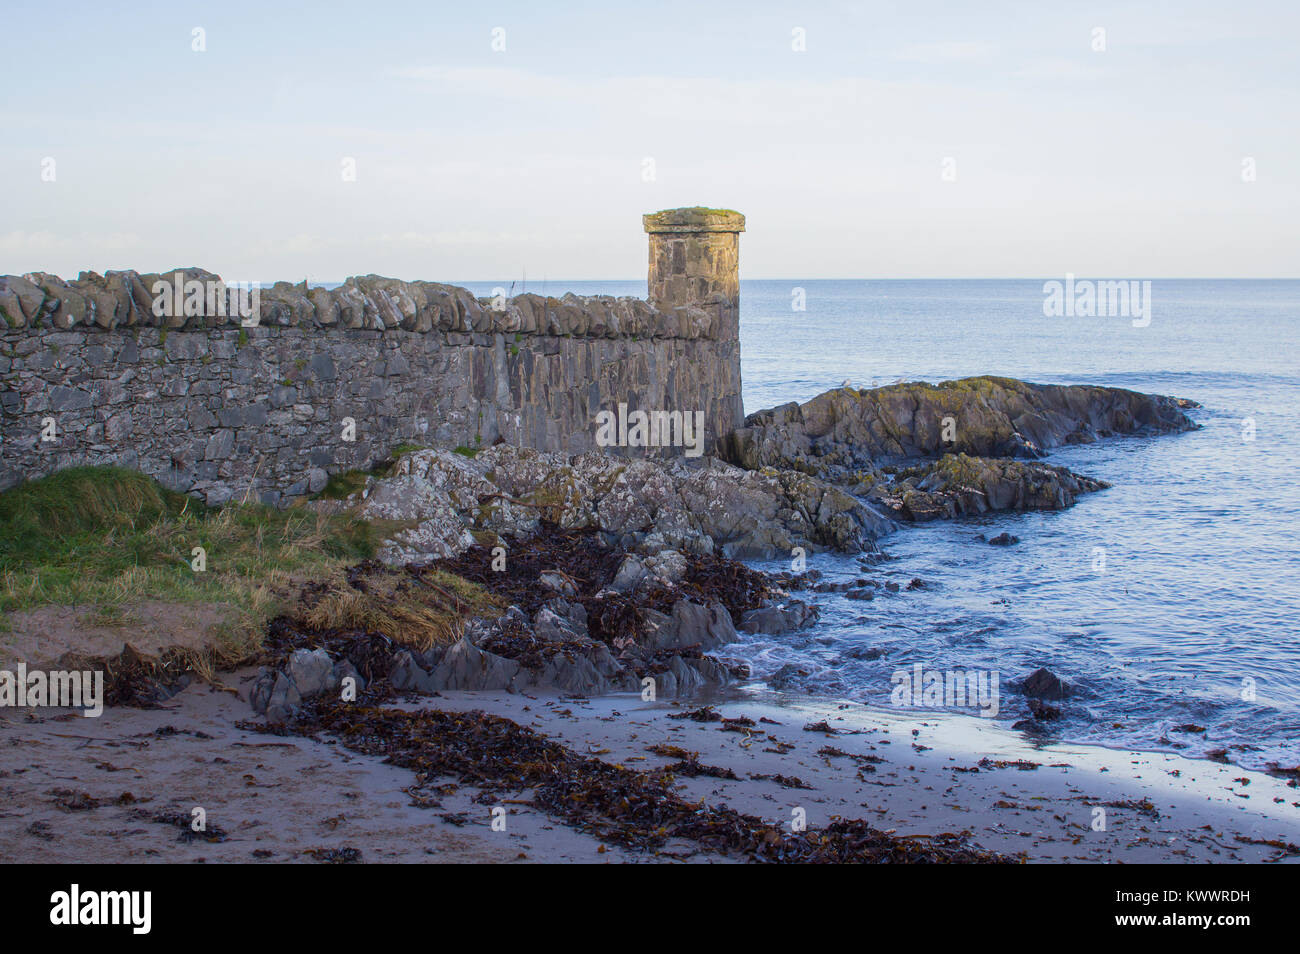 The rocky foreshore and the stone built replica fortifications at the seaside village of Groomsport in Count Down - Stock Image